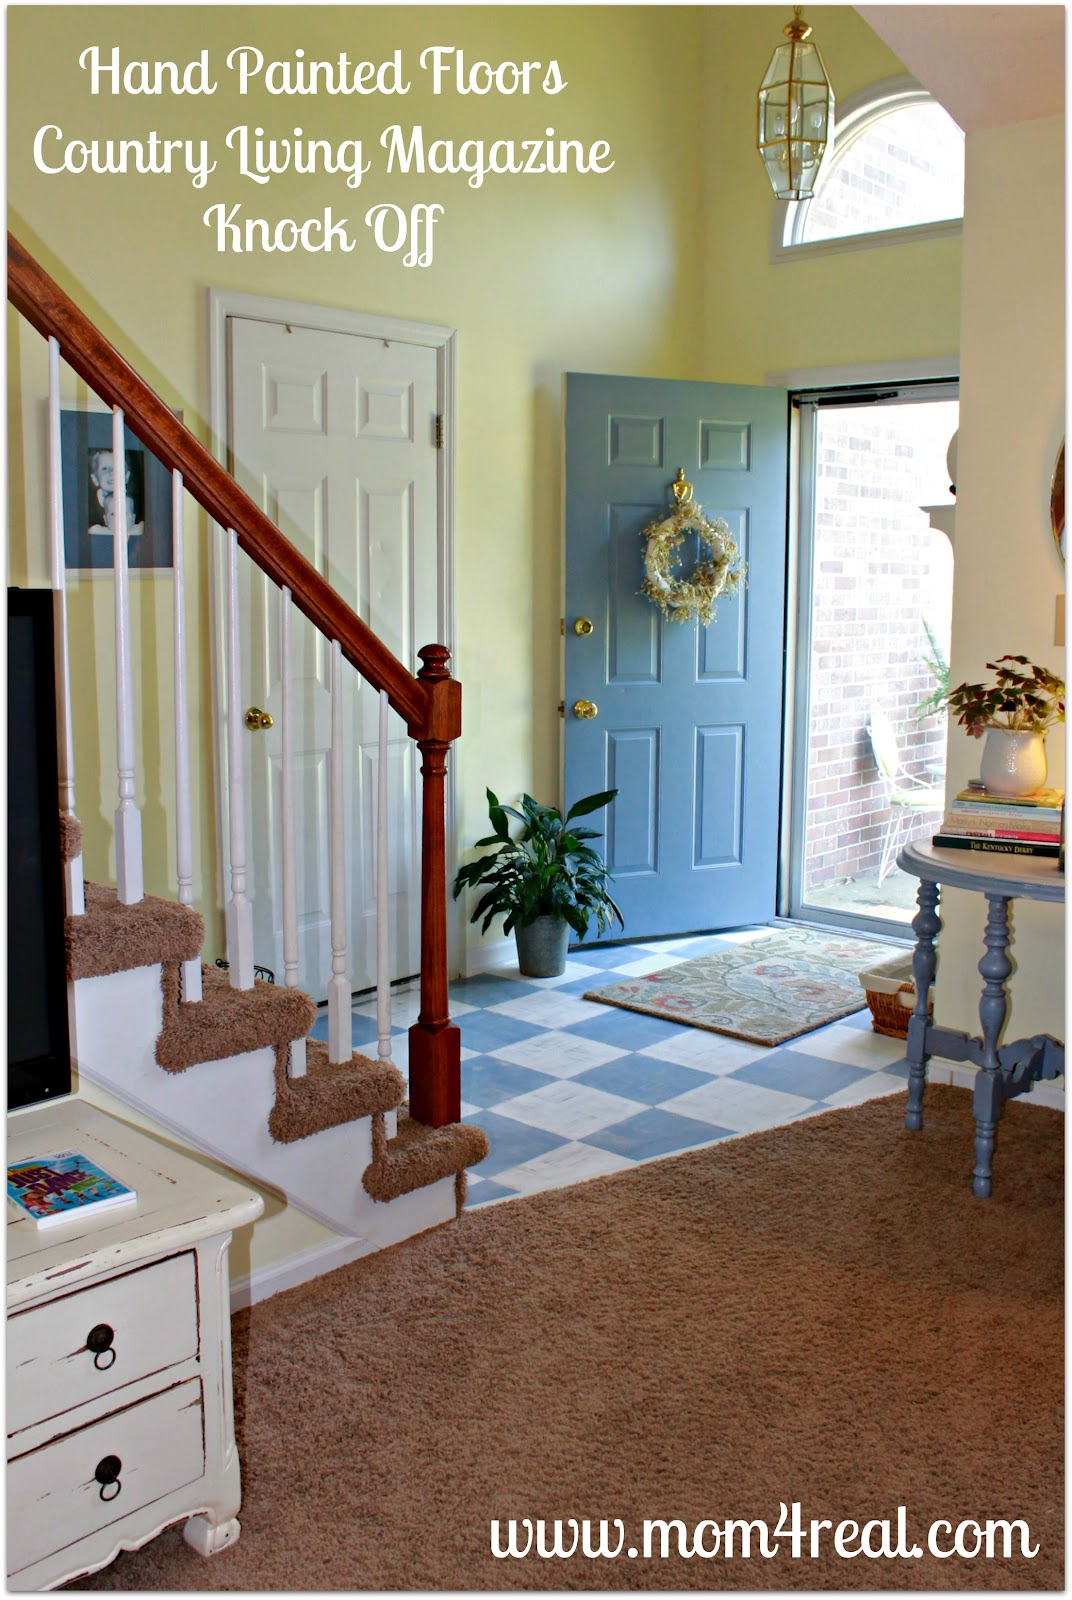 Painted wood floors mom 4 real i have hated the parquet floor in our entryway since the day we moved in i have thought about replacing them but with kids and animals constantly coming solutioingenieria Gallery